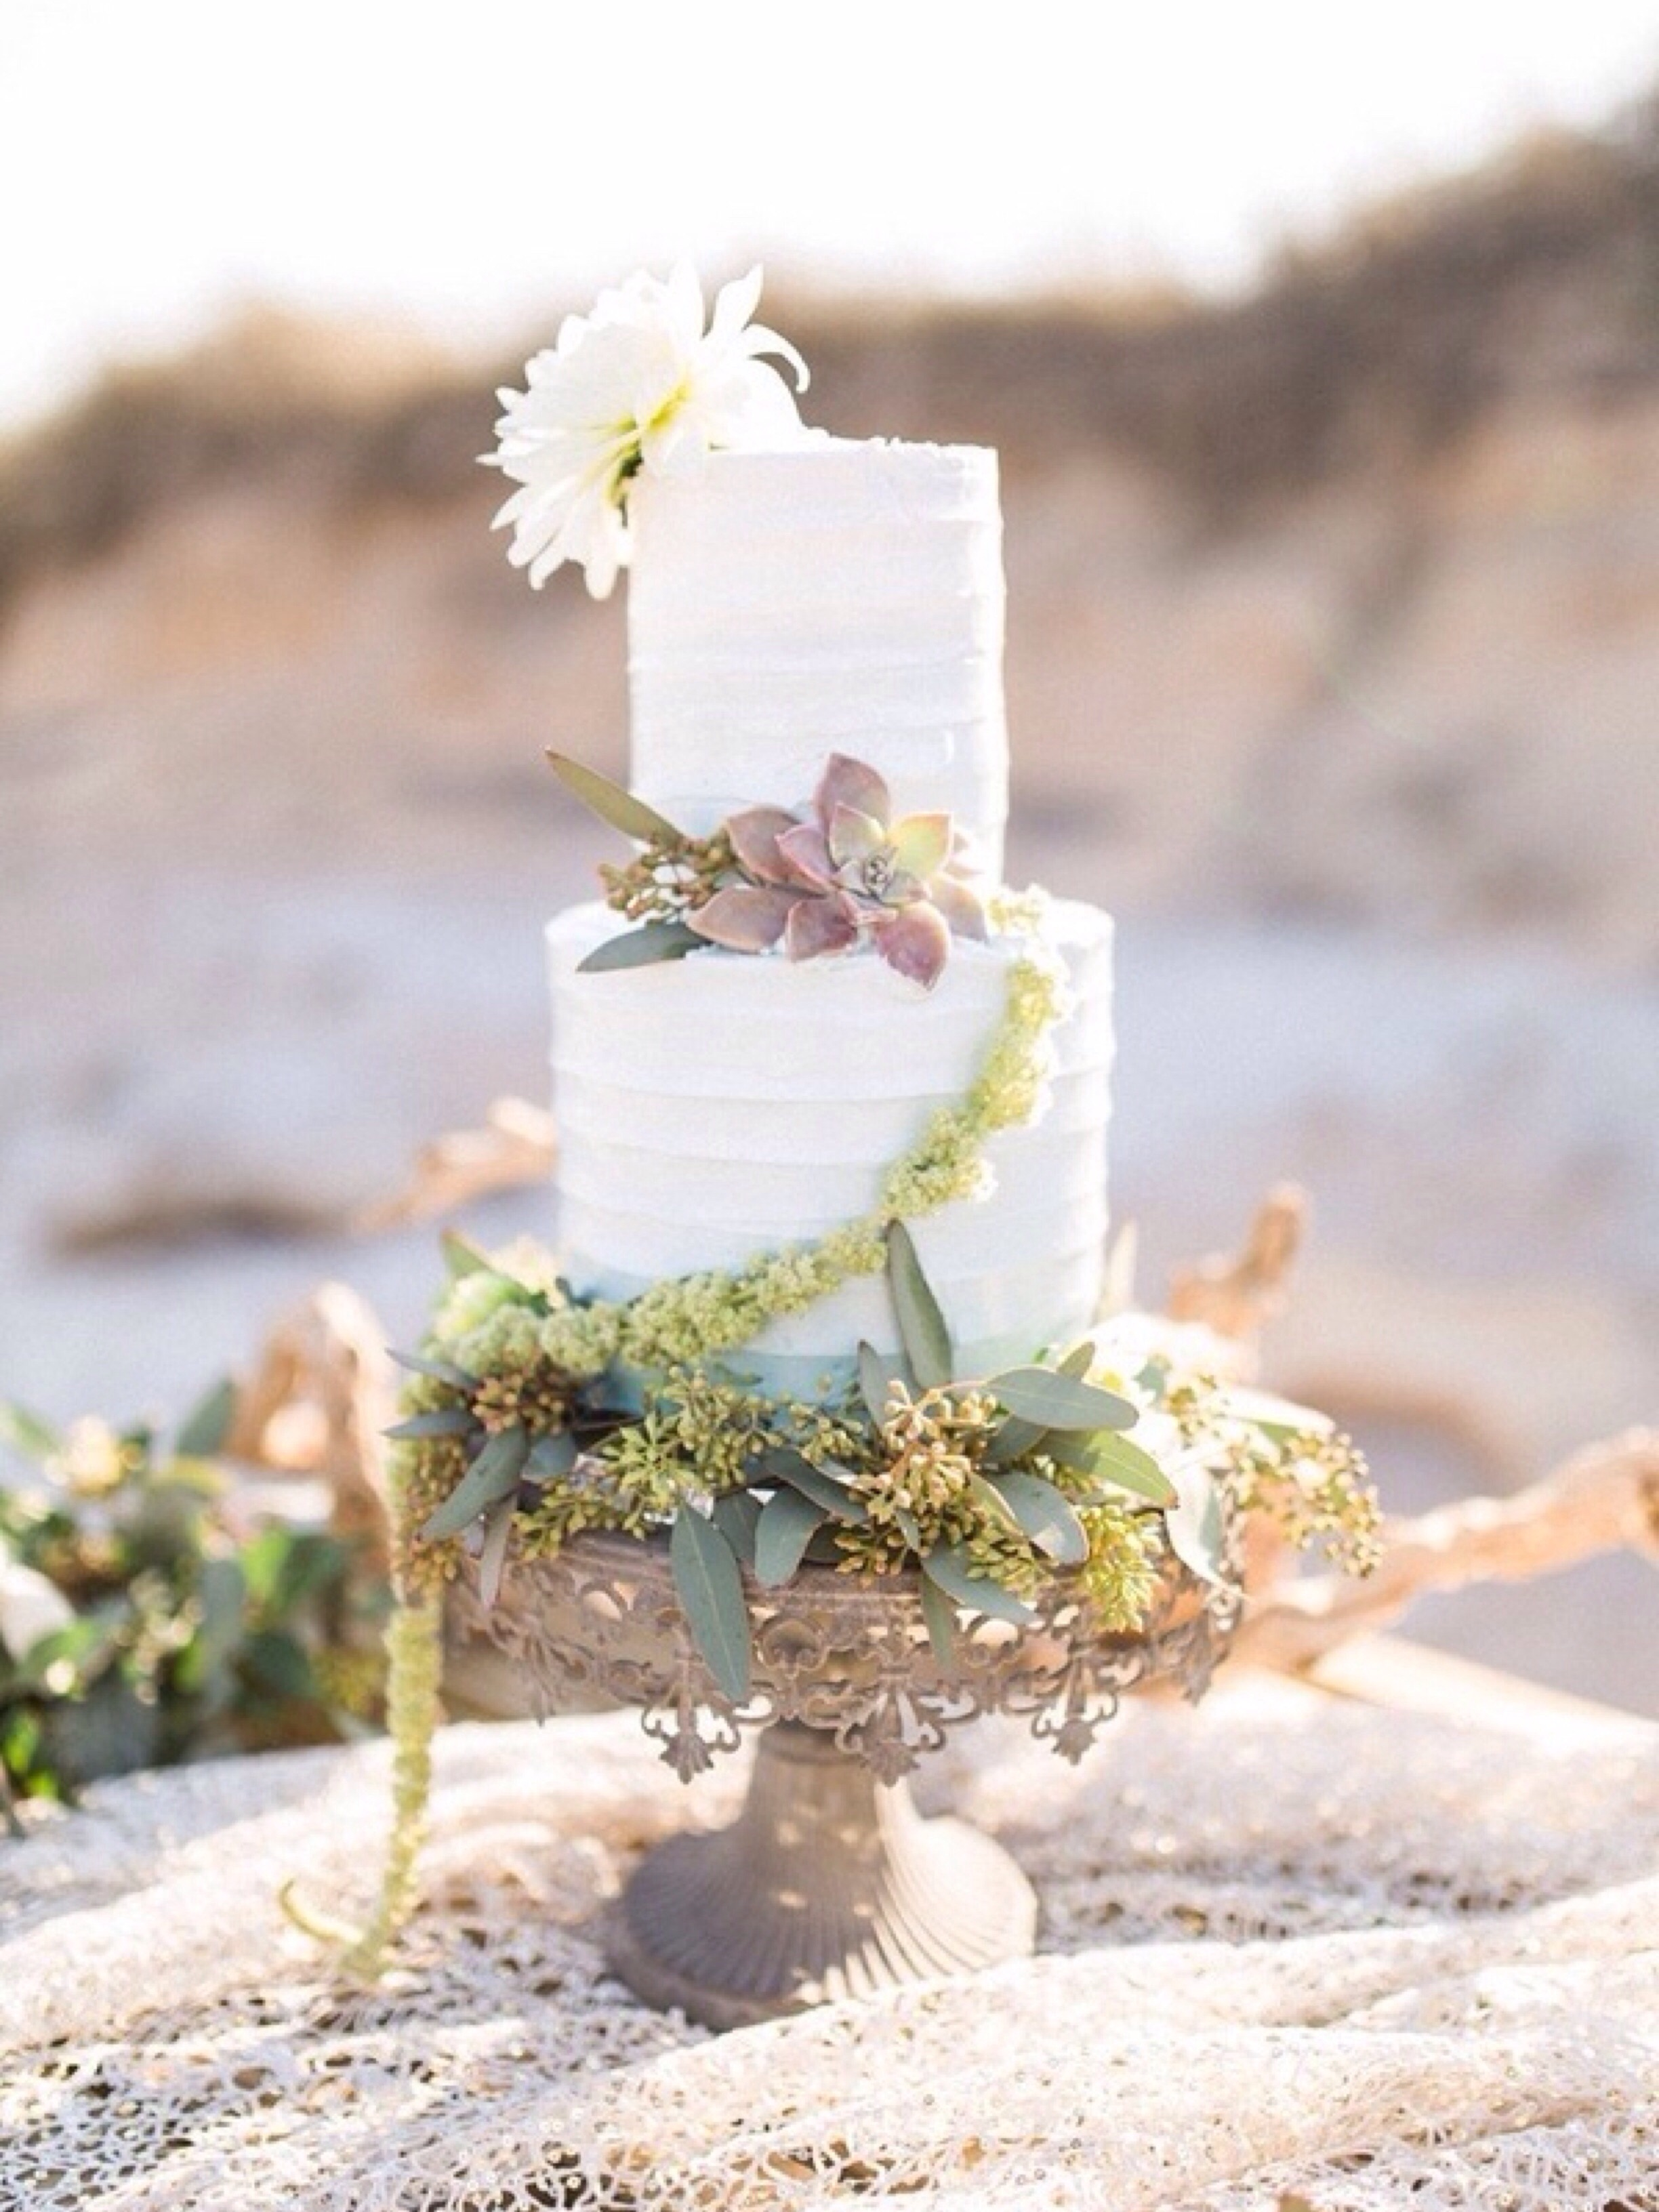 Sophisticated Oceanside Celebration: Photography by Bri Cibene Photography via Heather Renee Celebrations